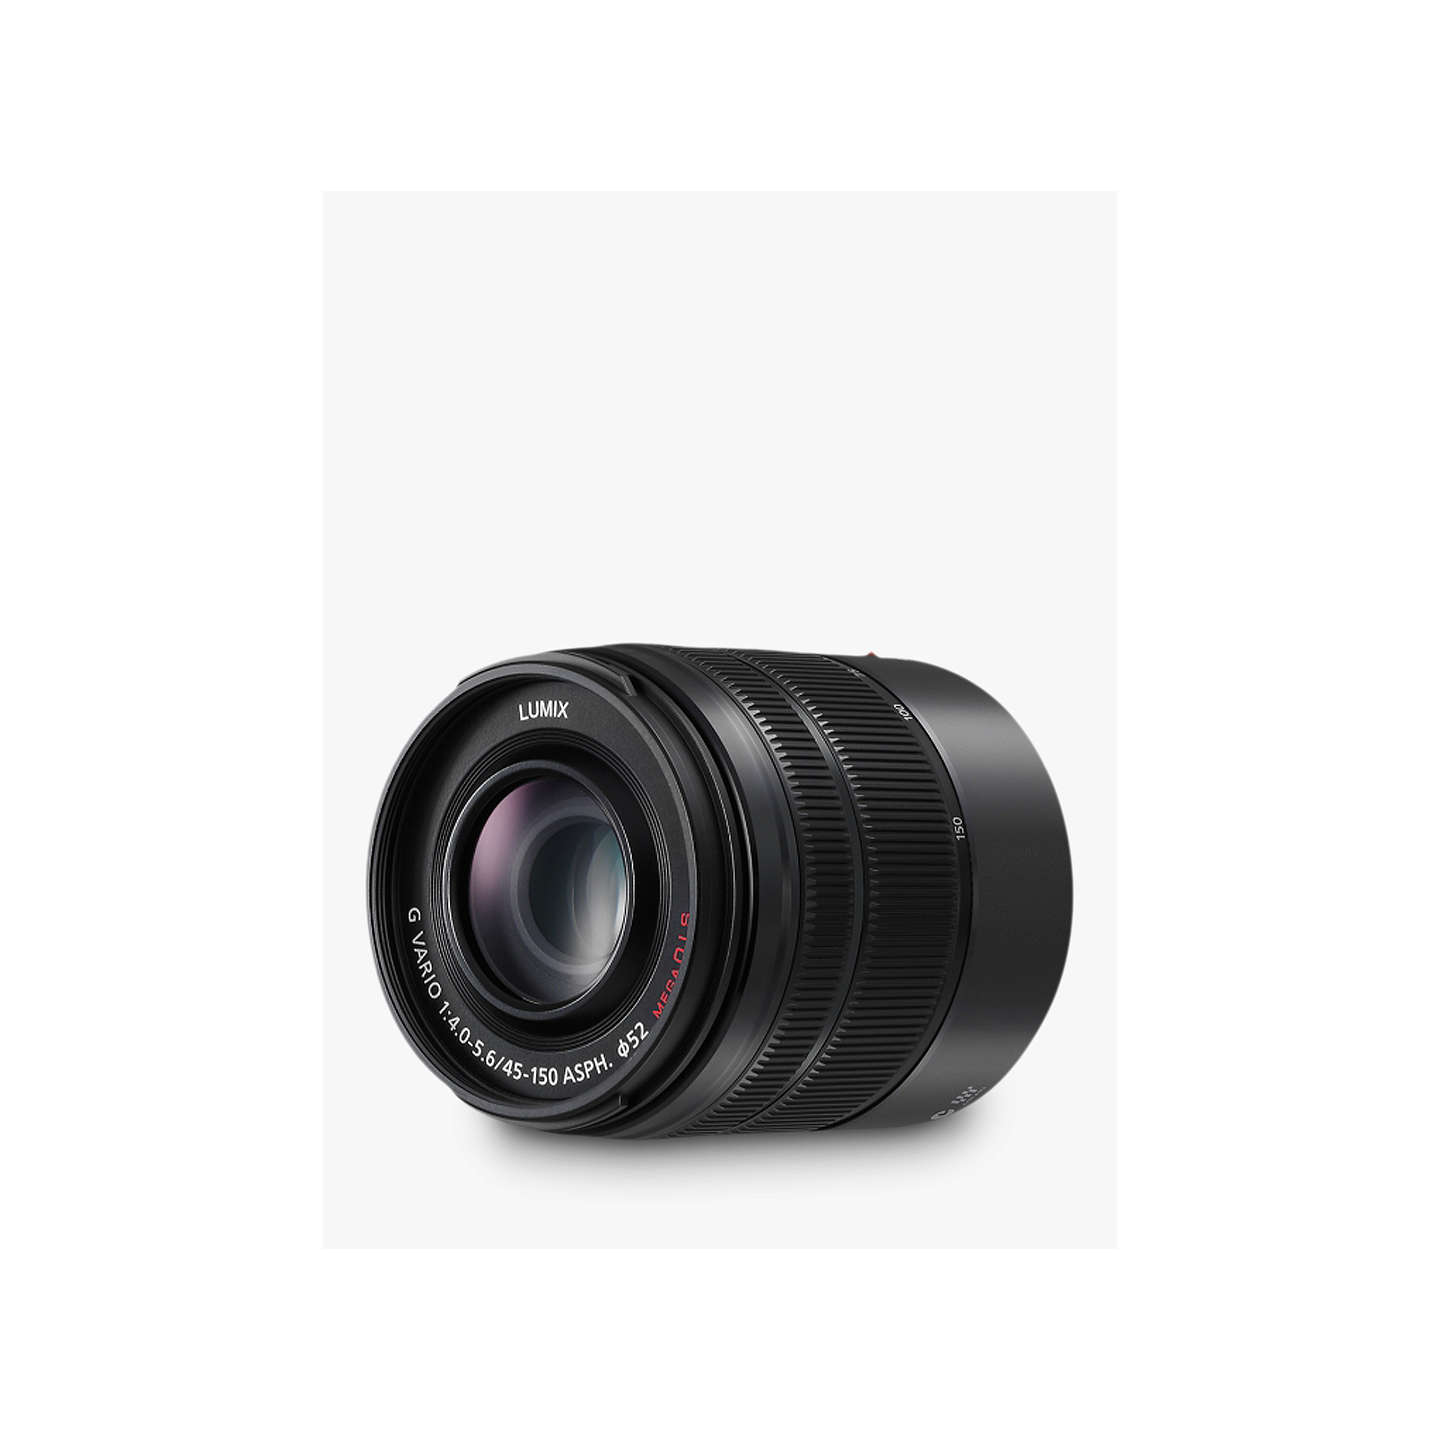 BuyPanasonic Lumix G VARIO 45-150mm f/4.0-5.6 ASPH OIS Telephoto Lens Online at johnlewis.com